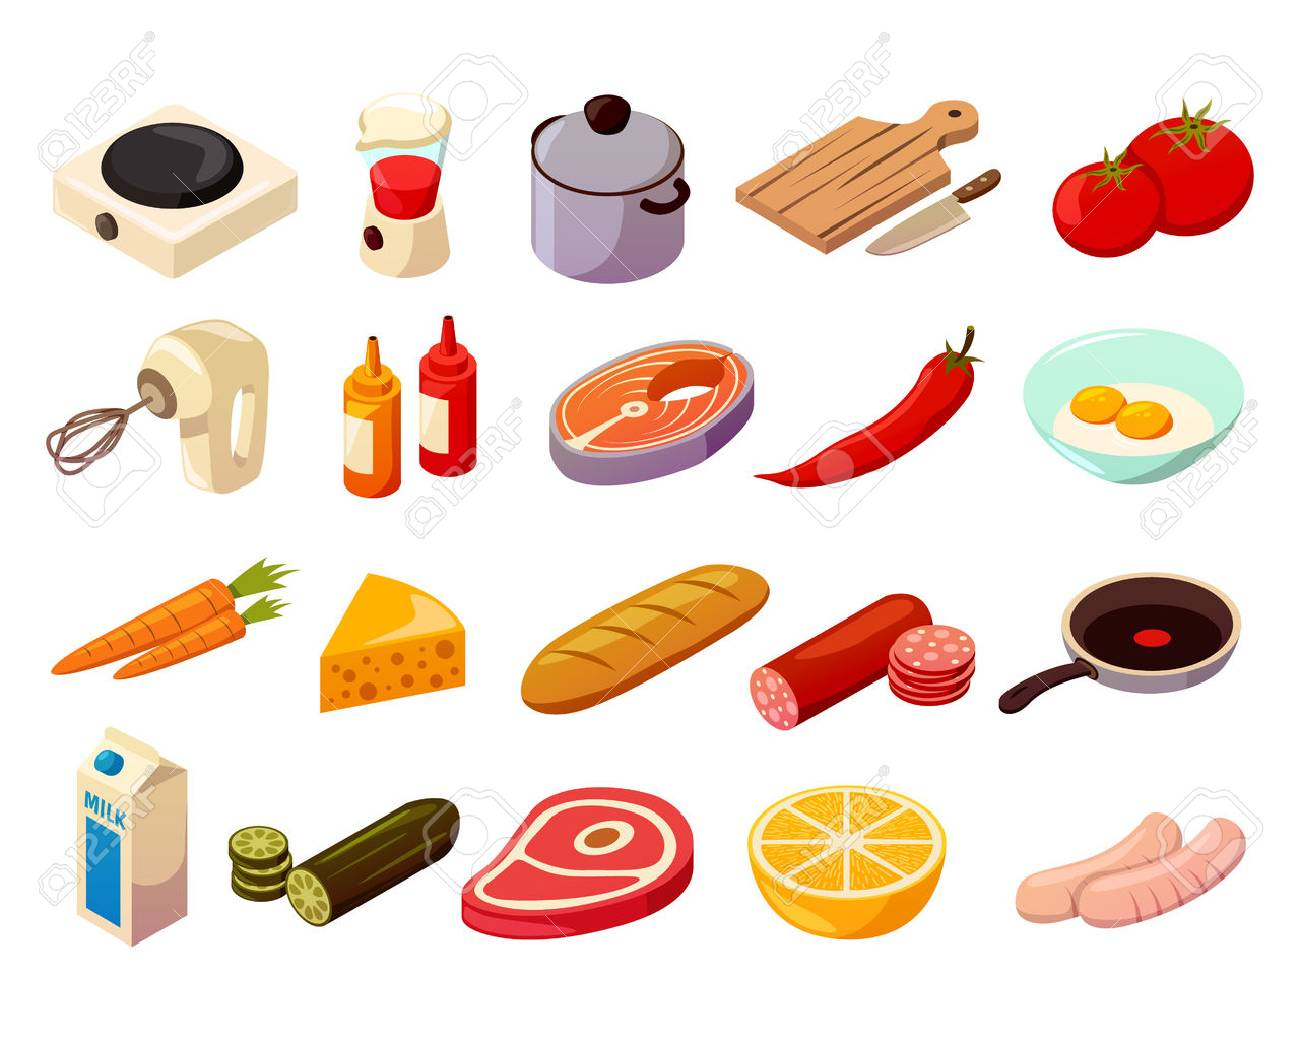 Food cooking set of isometric icons with kitchenware, culinary equipment, meat, fish and vegetables isolated vector illustration - 90905361